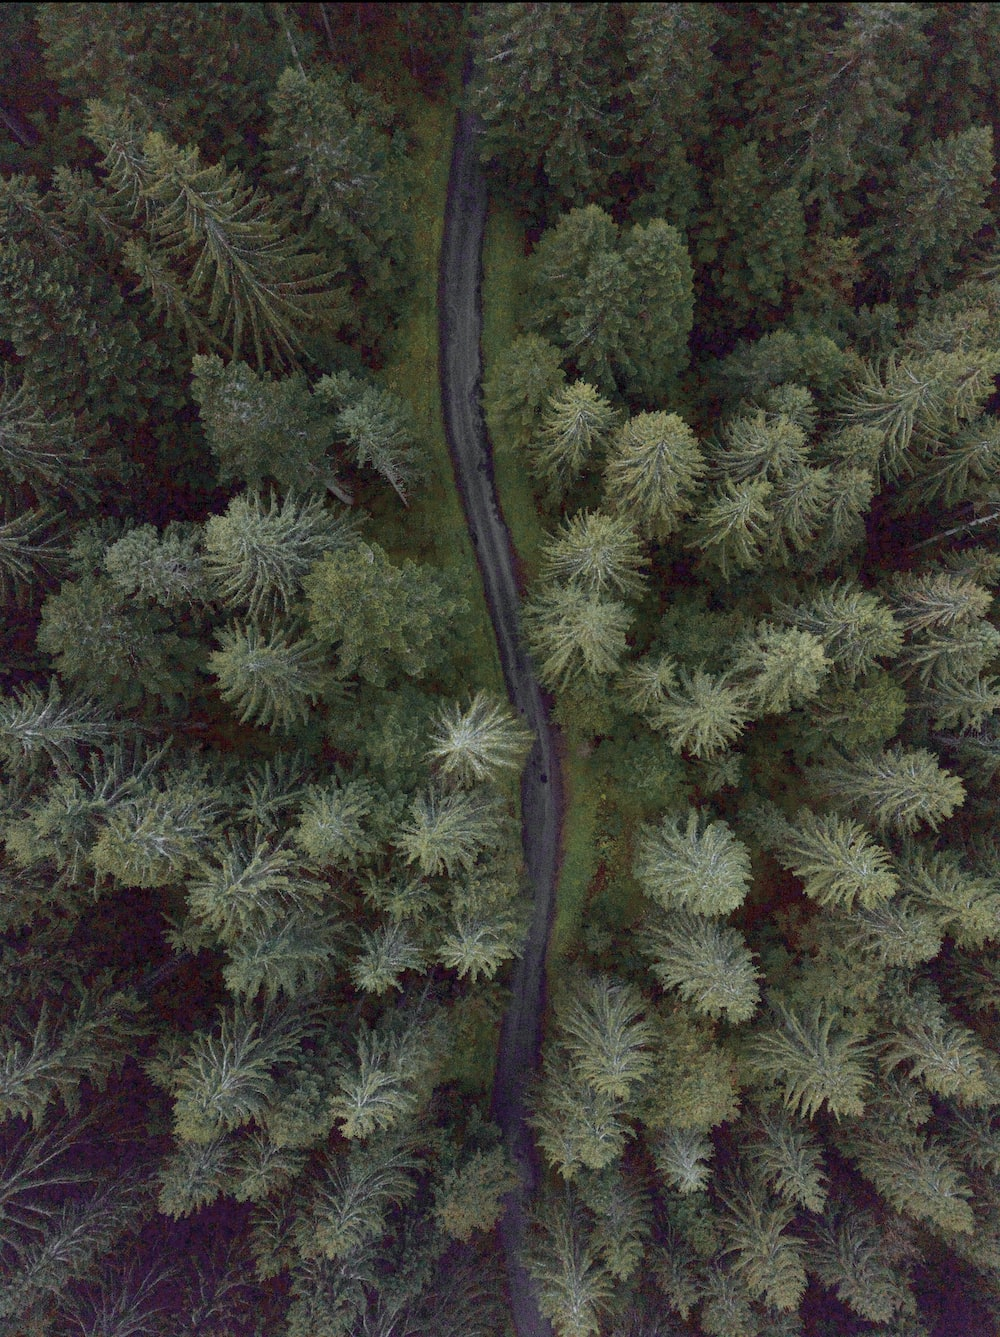 aerial photography of a road between trees